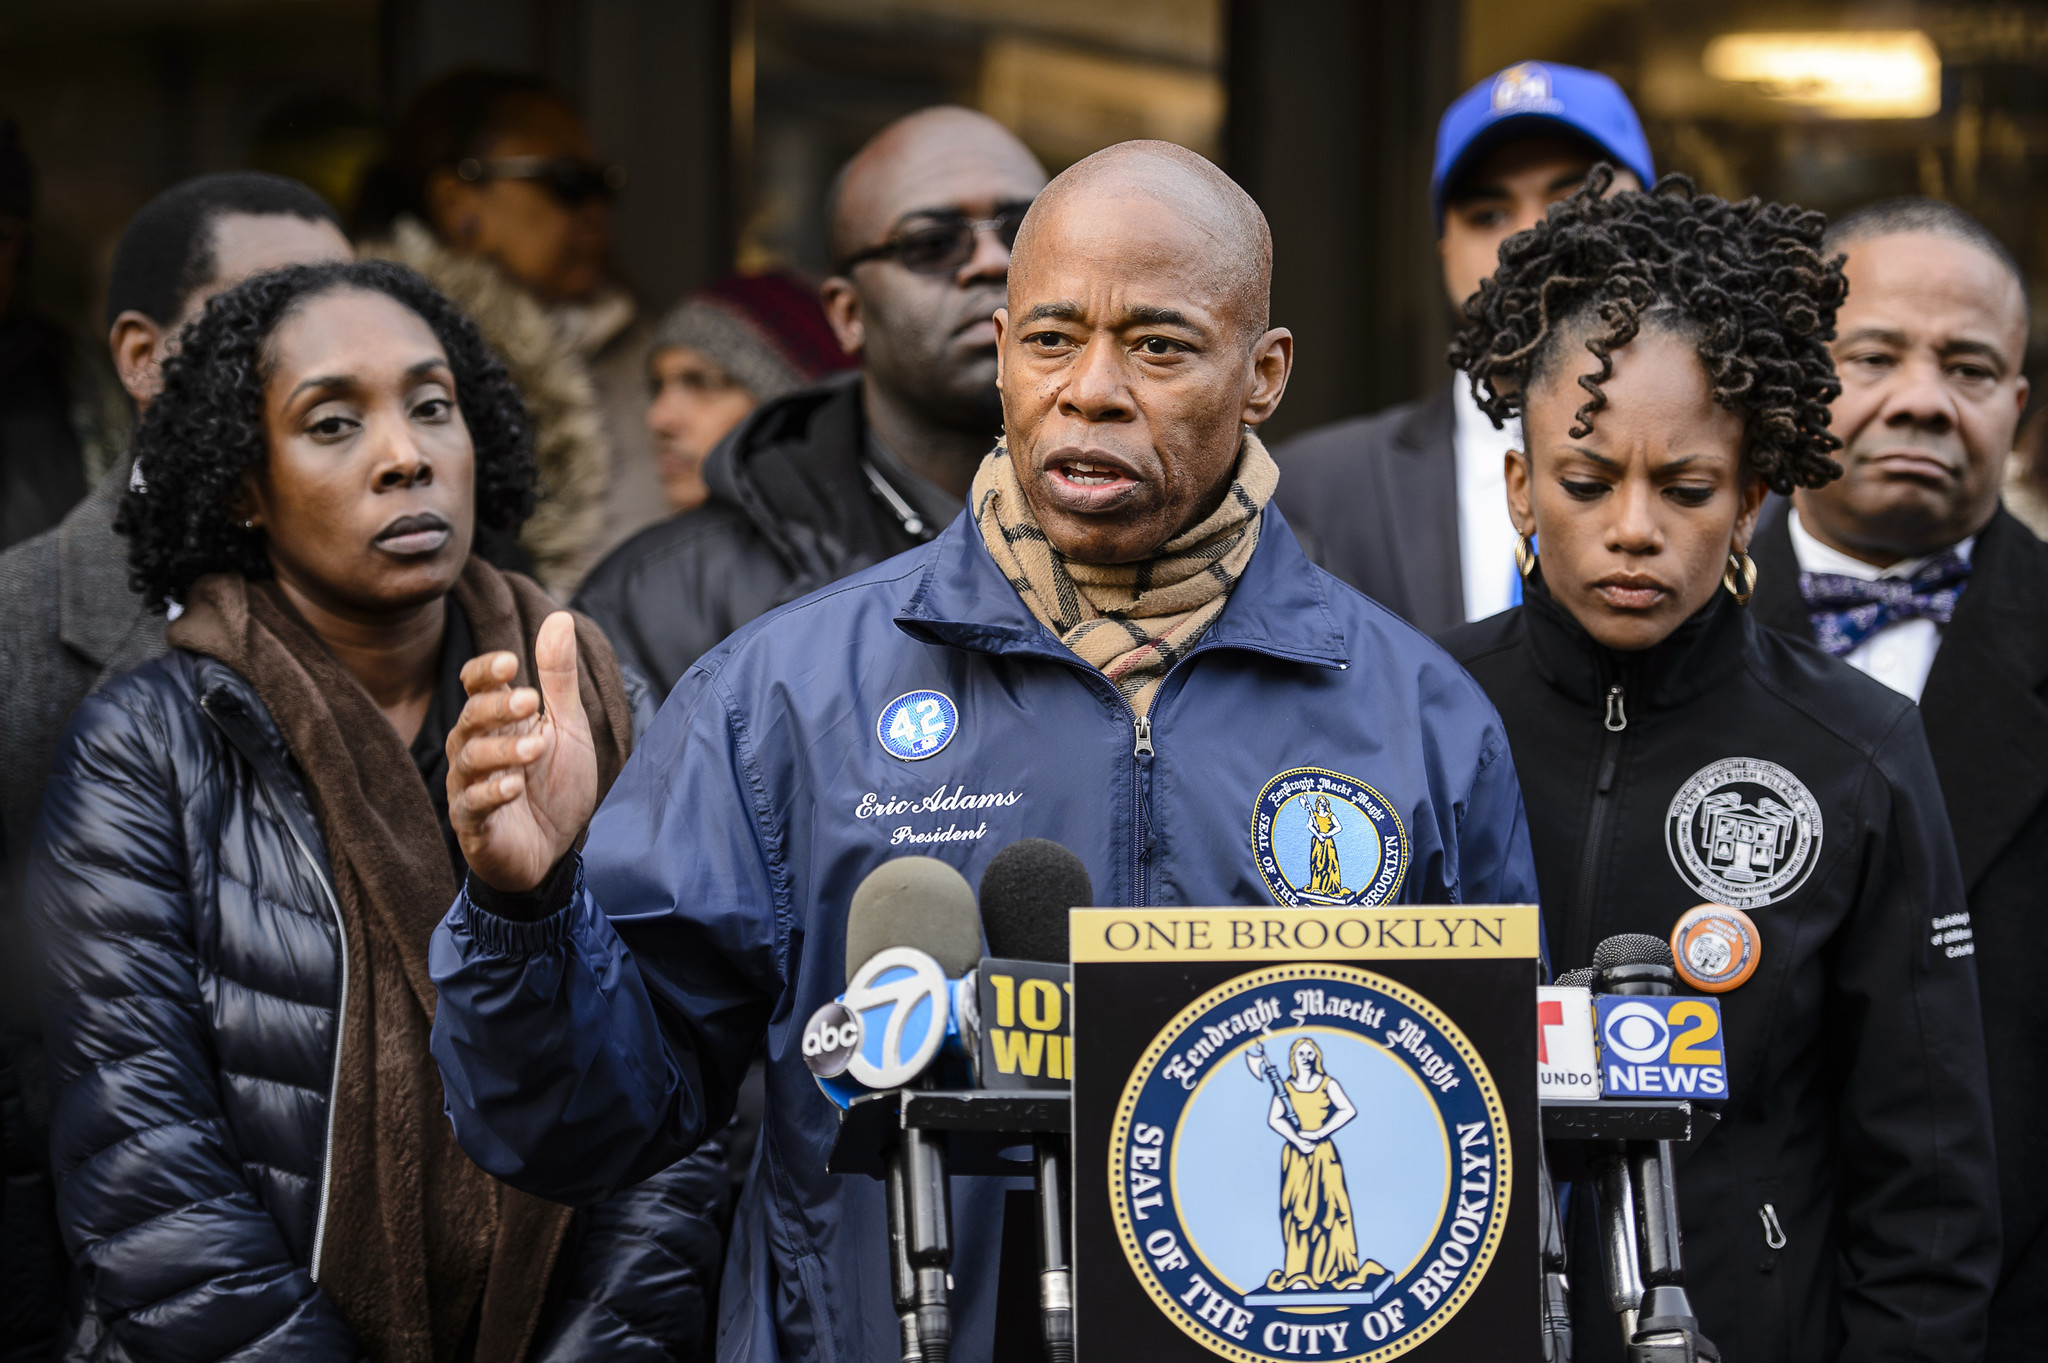 Community leaders want subway attack of Brooklyn woman investigated as hate crime | New York Daily News